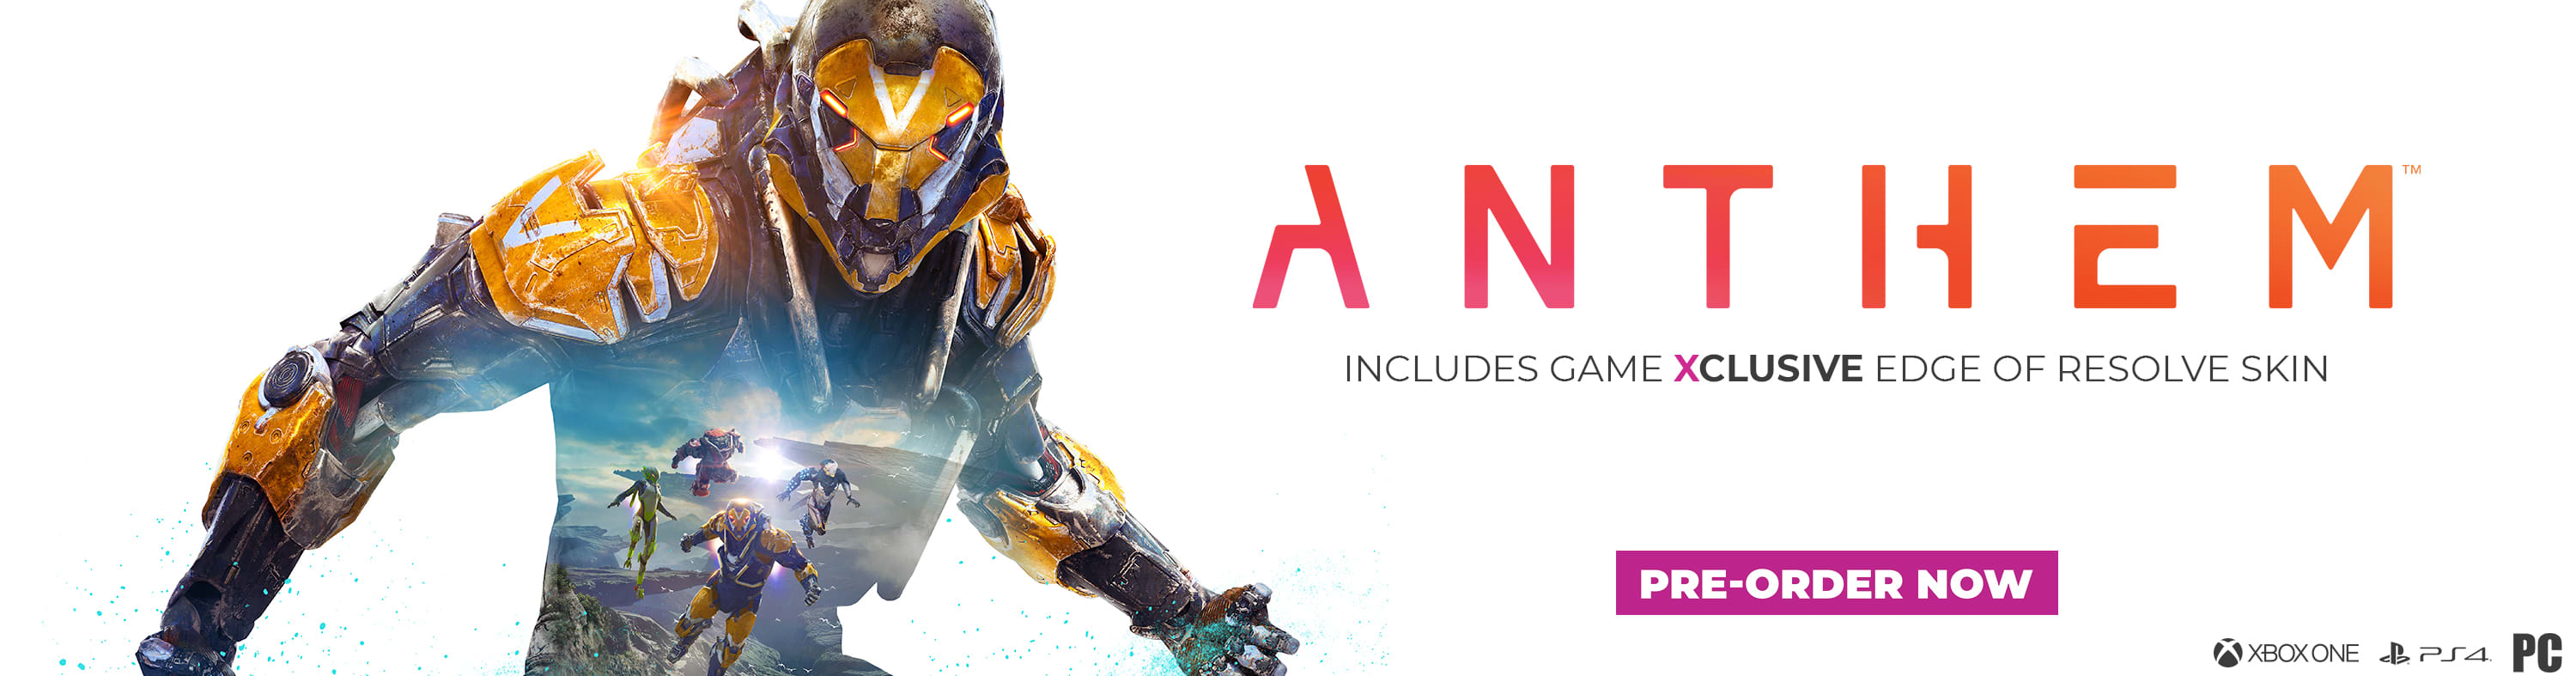 Anthem - GAME Exclusive Edge of Resolve Skin